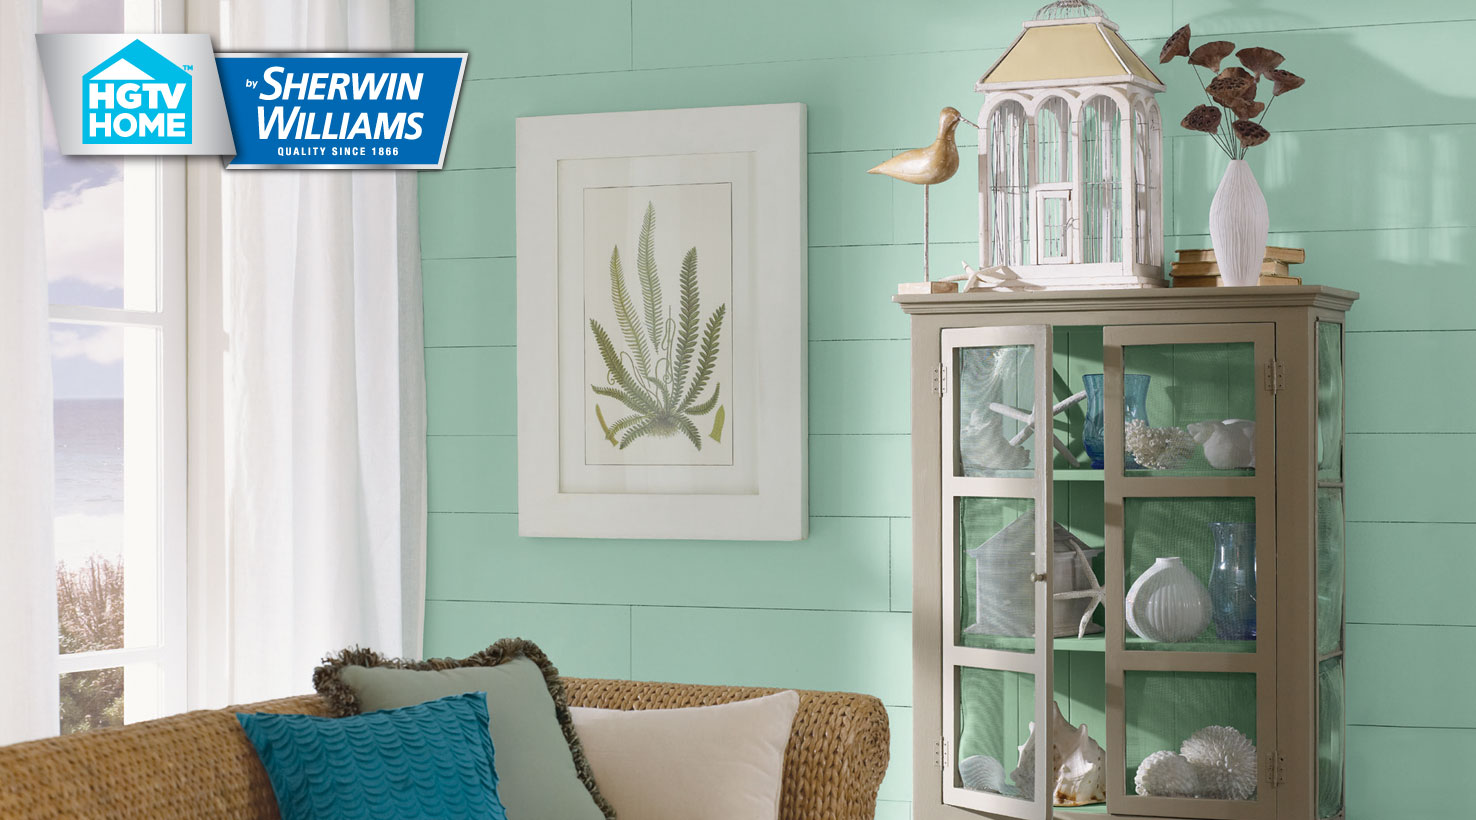 Merveilleux Sherwin Williams